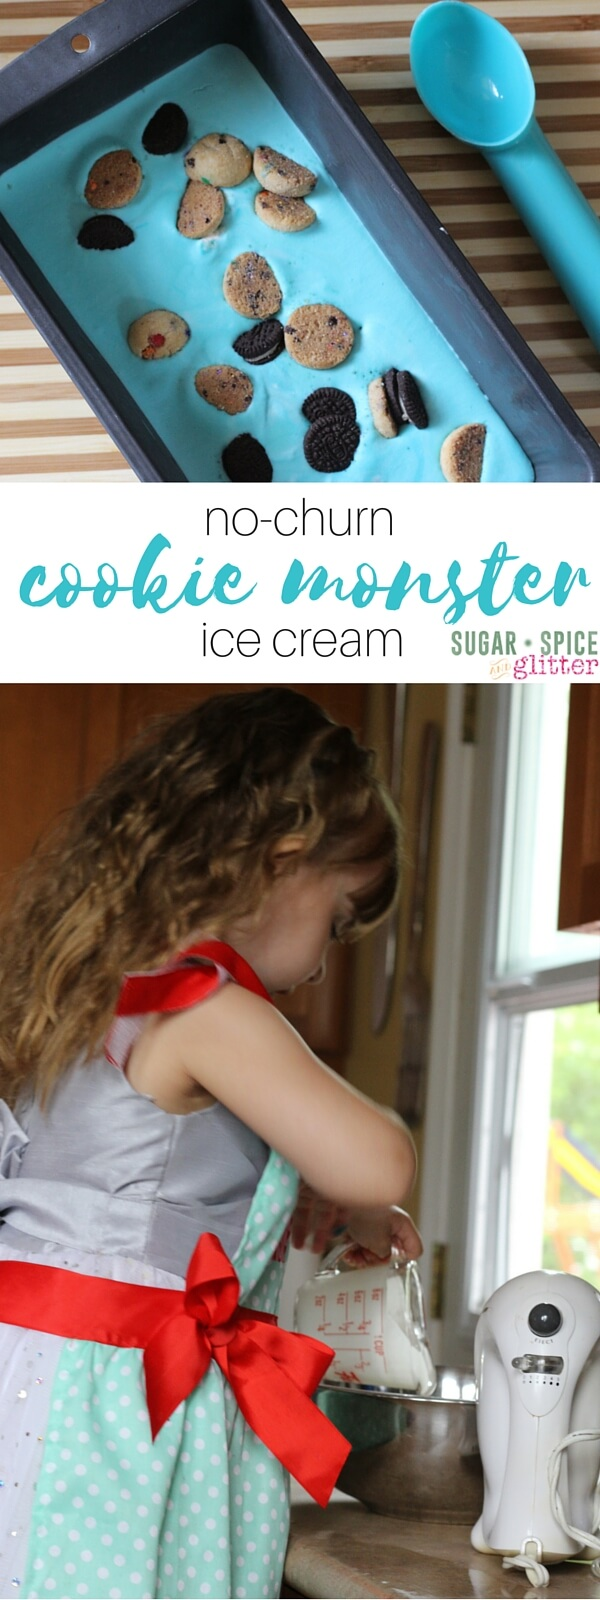 No-churn Cookie Monster Ice Cream, made by kids in the kitchen! Using natural food dyes, this cookie monster ice cream is a fun summer dessert for kids!